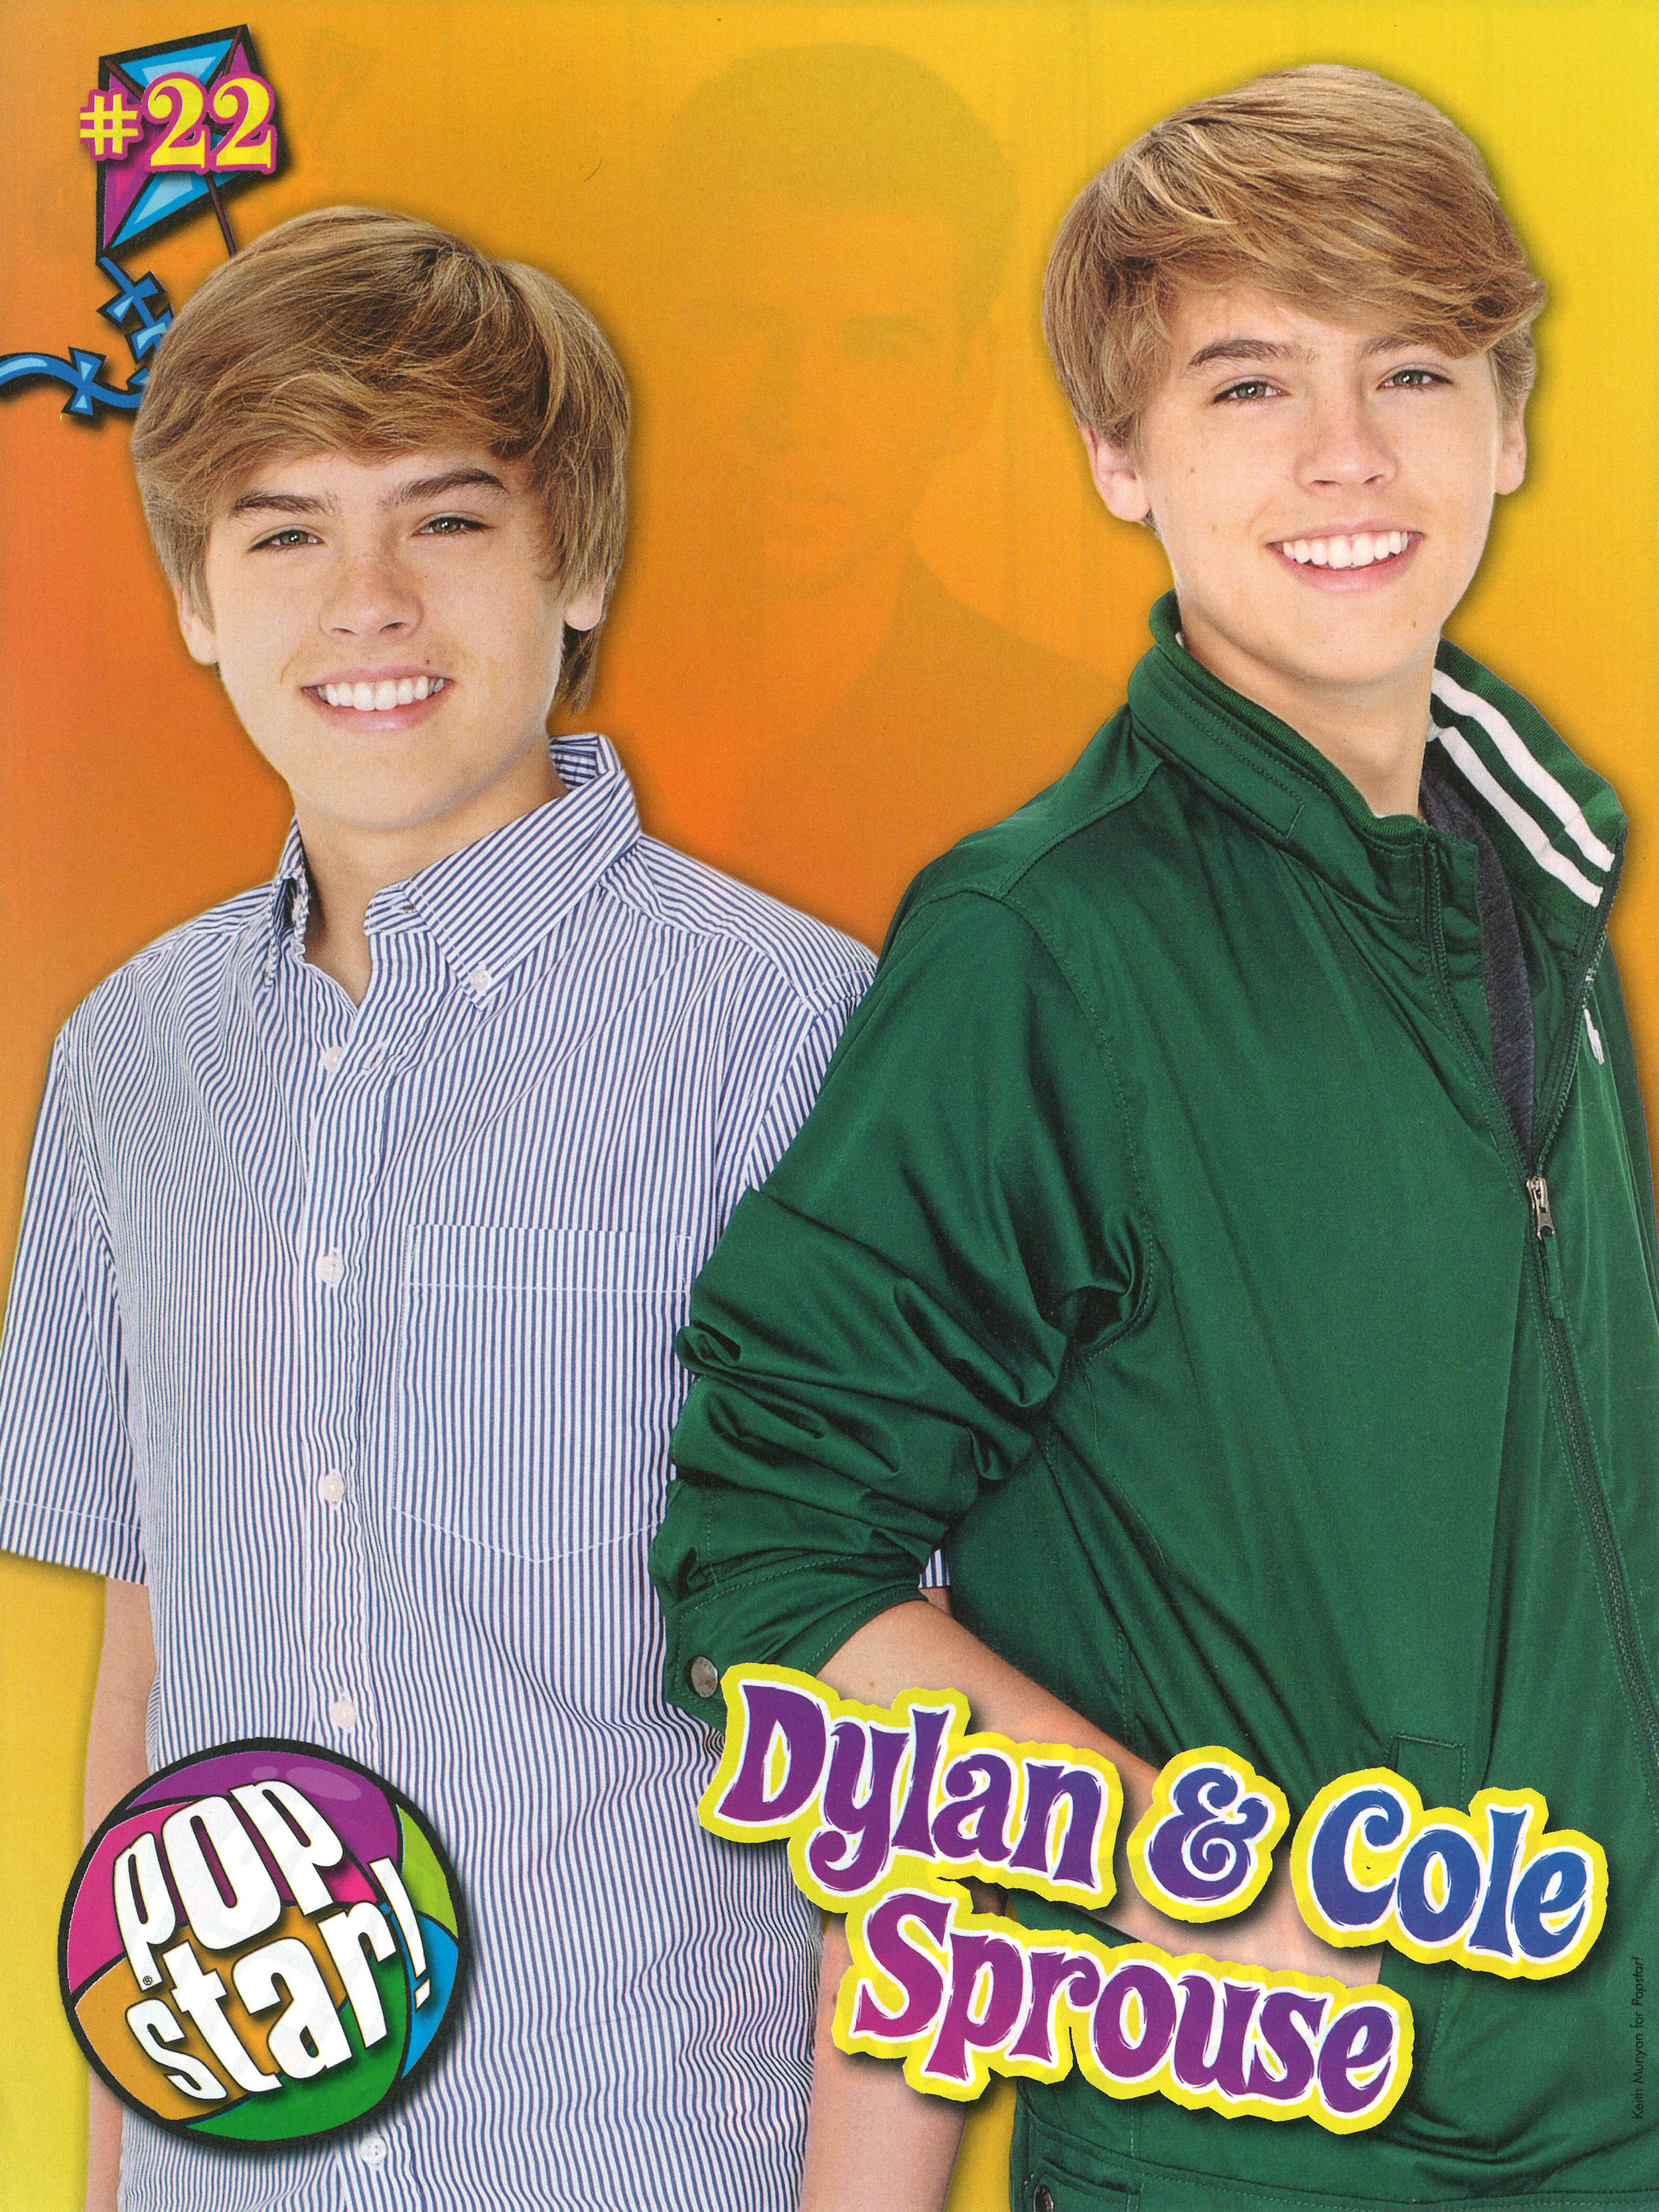 Sprouse Twins.jpg